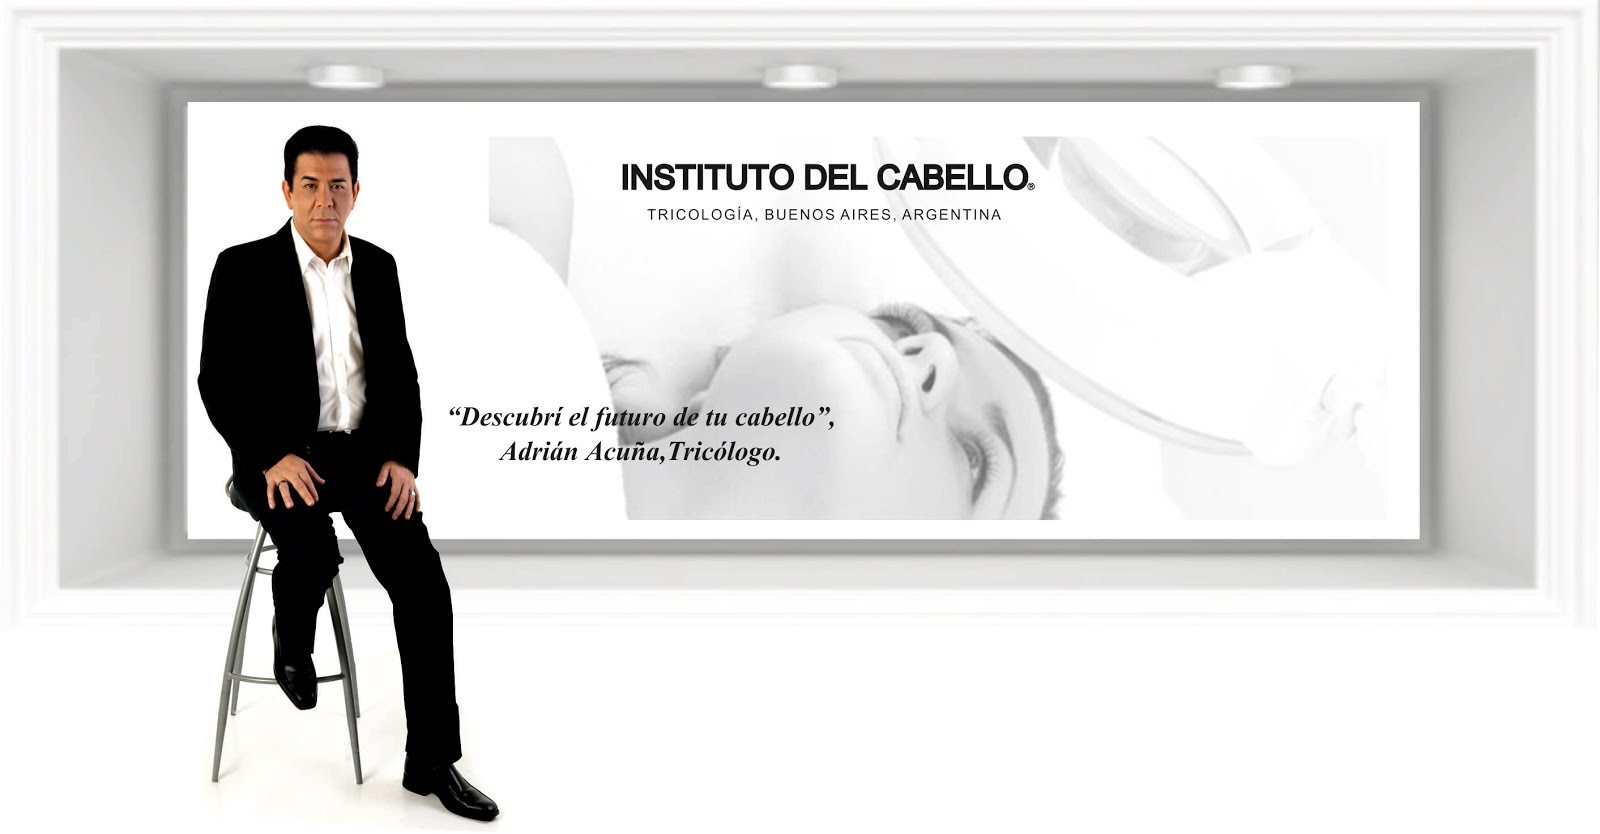 Instituto del Cabello